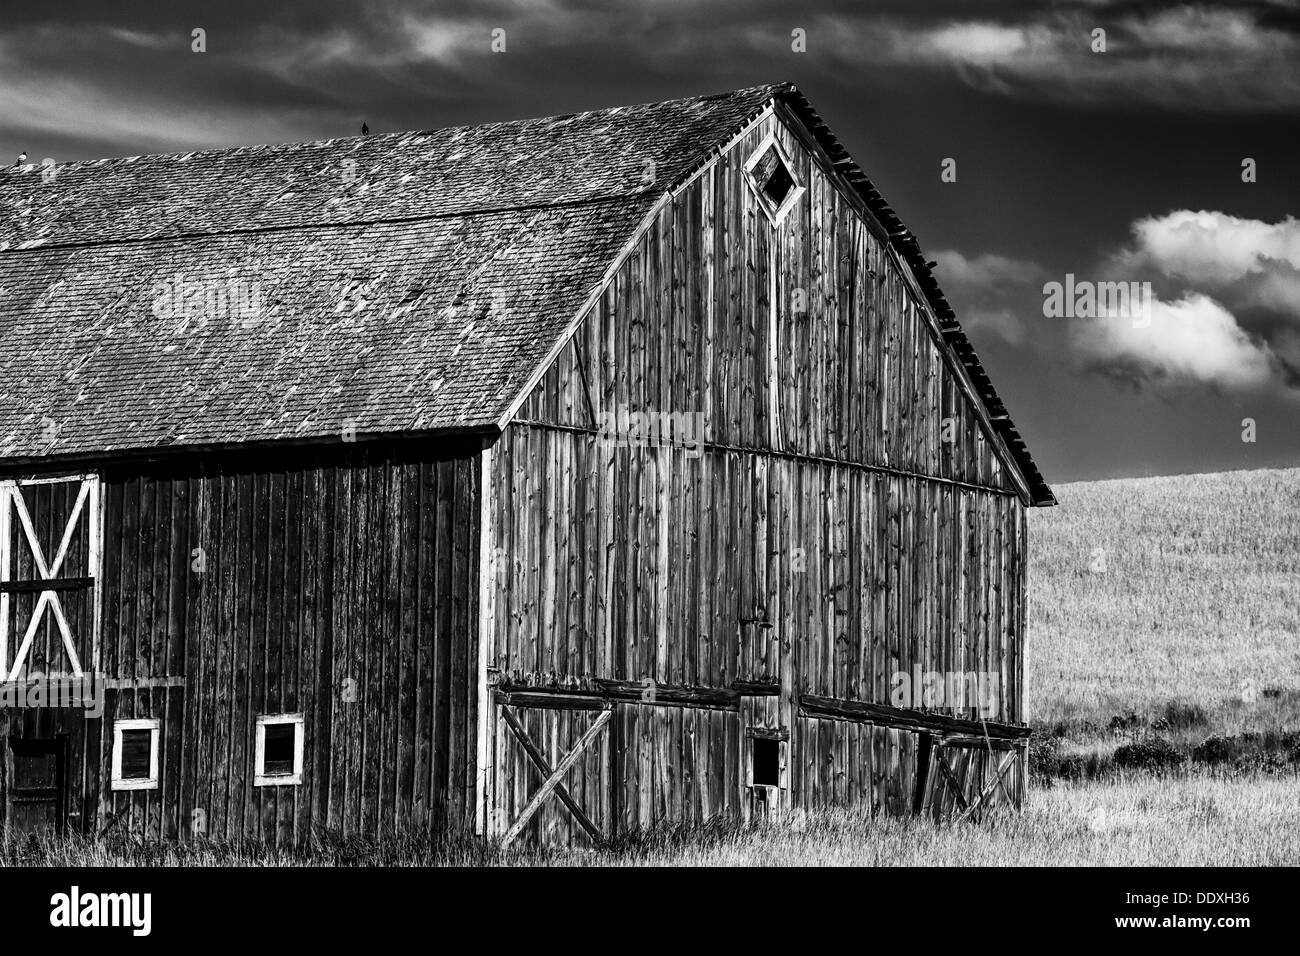 Black and White of an old barn in the Palouse farming region of SE Washington State, USA - Stock Image